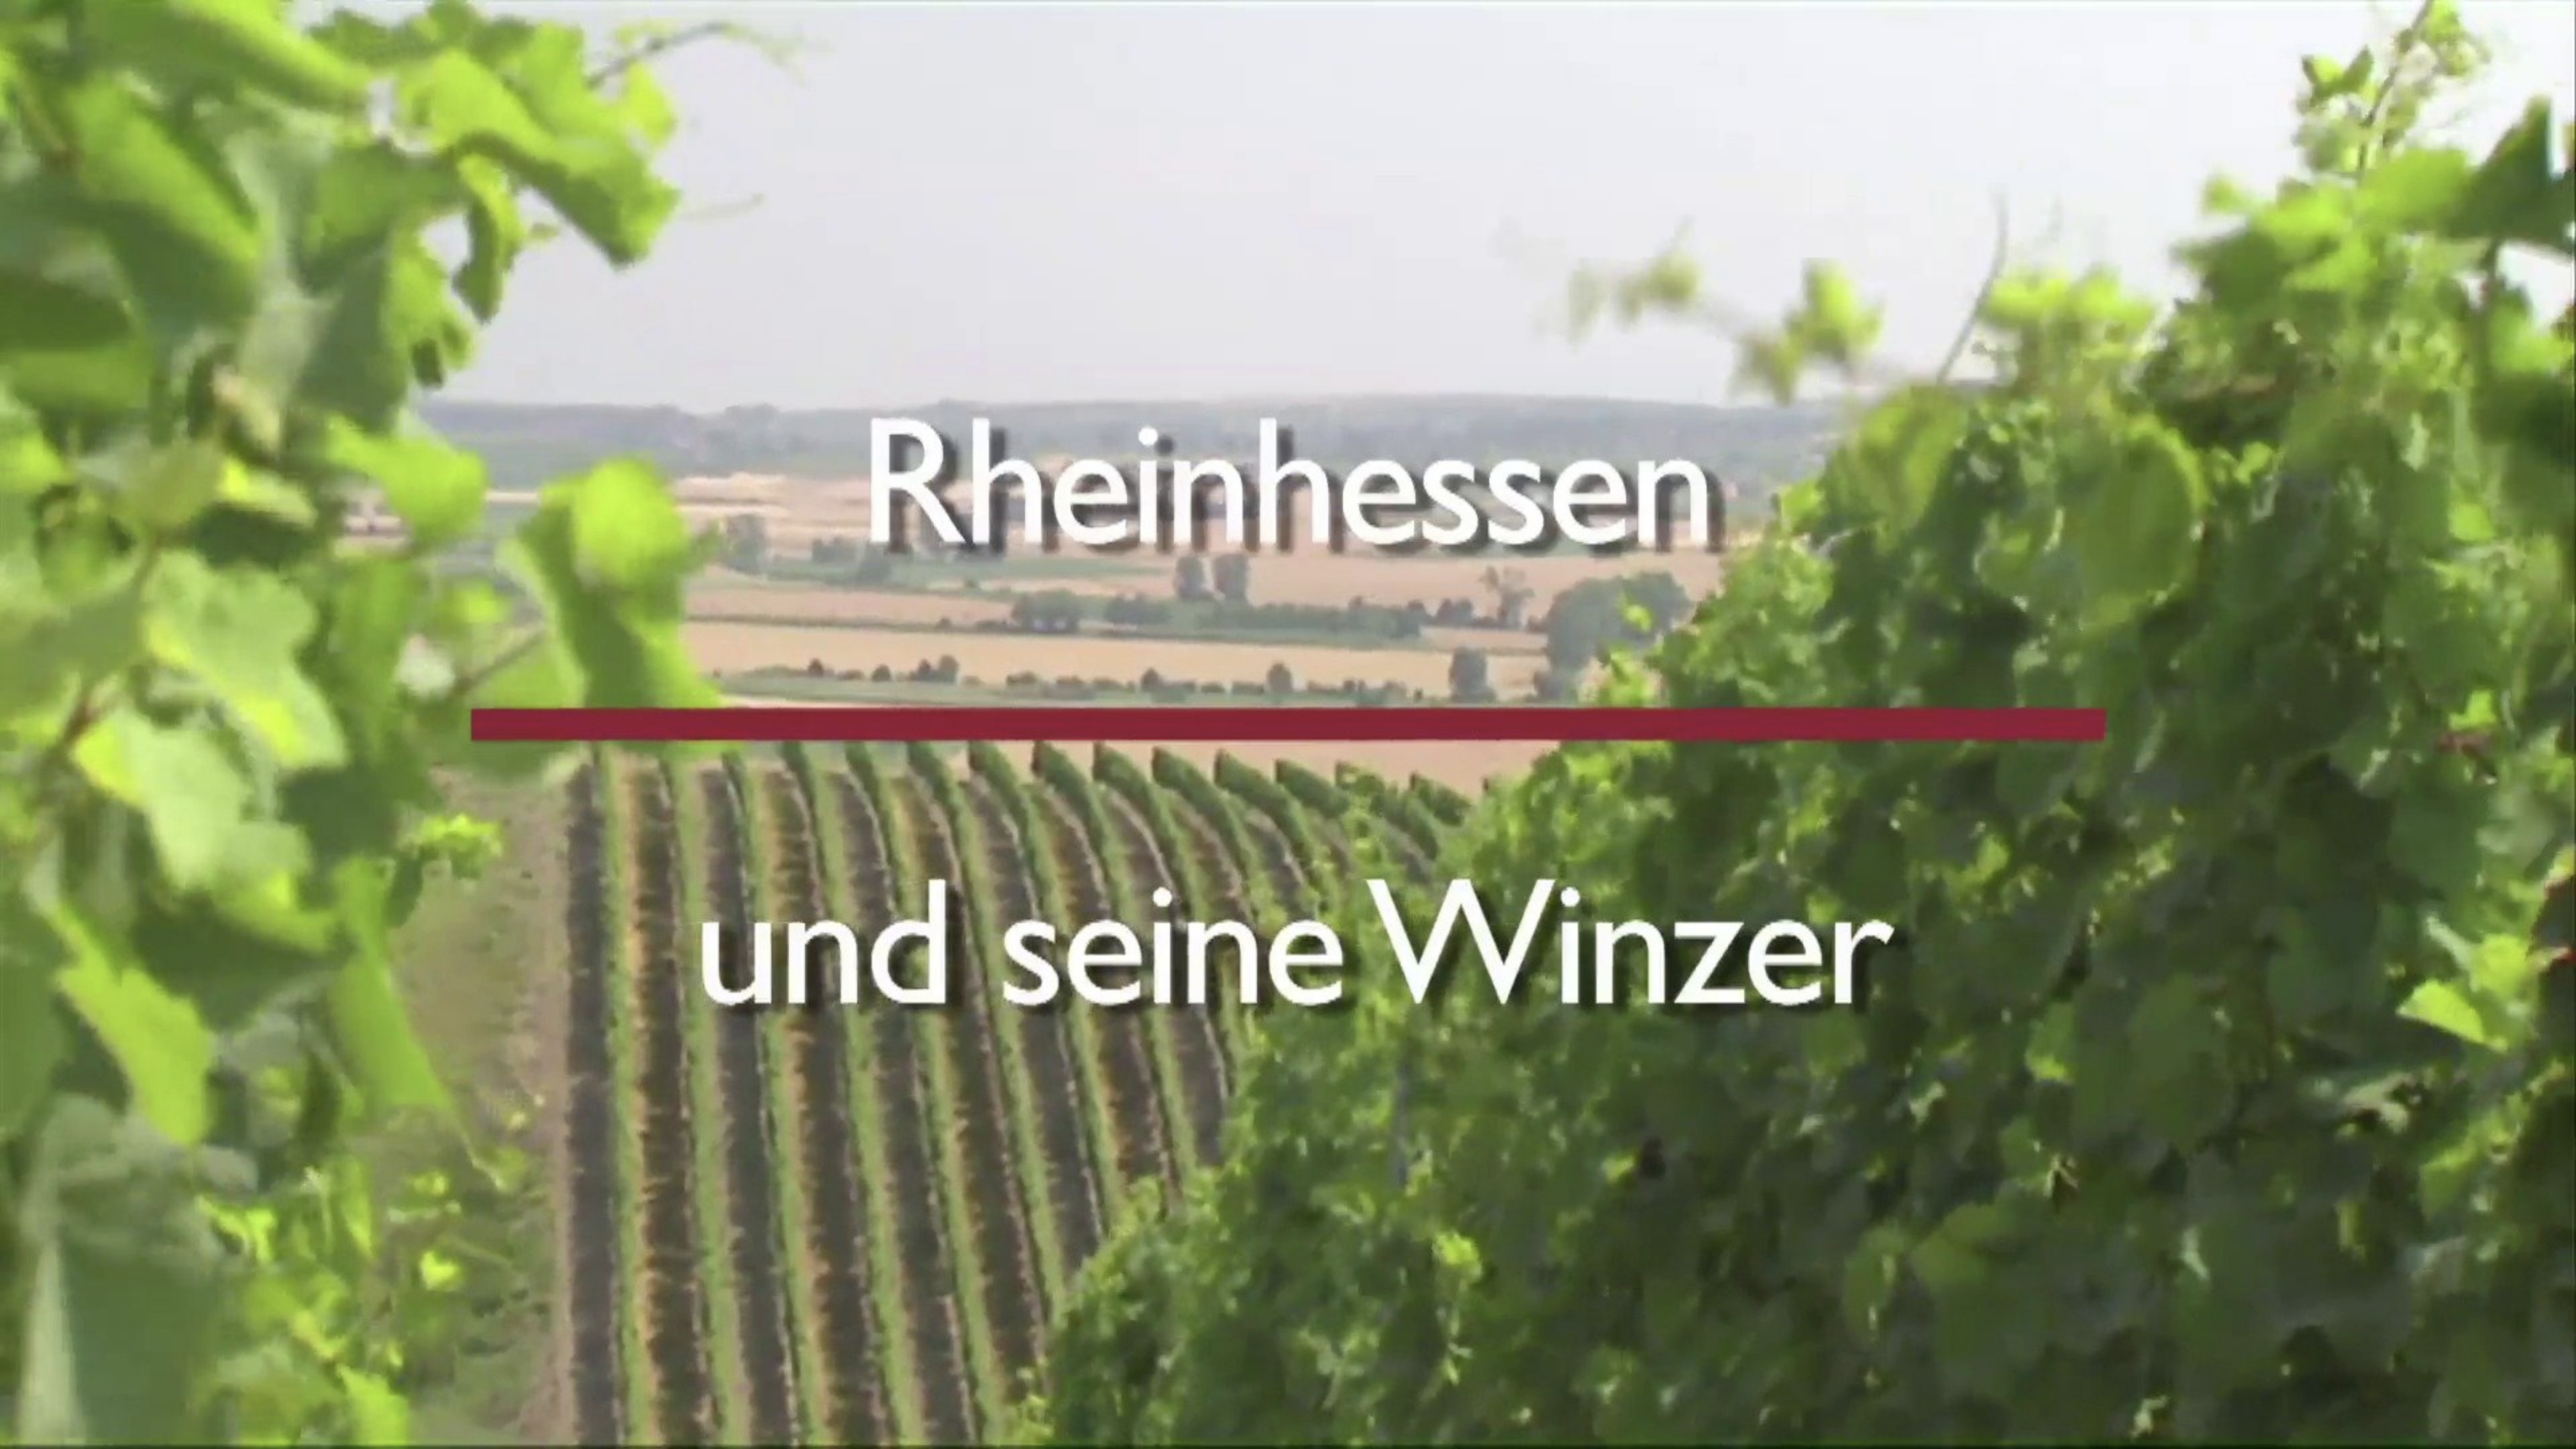 The wine-growing region of Rheinhessen